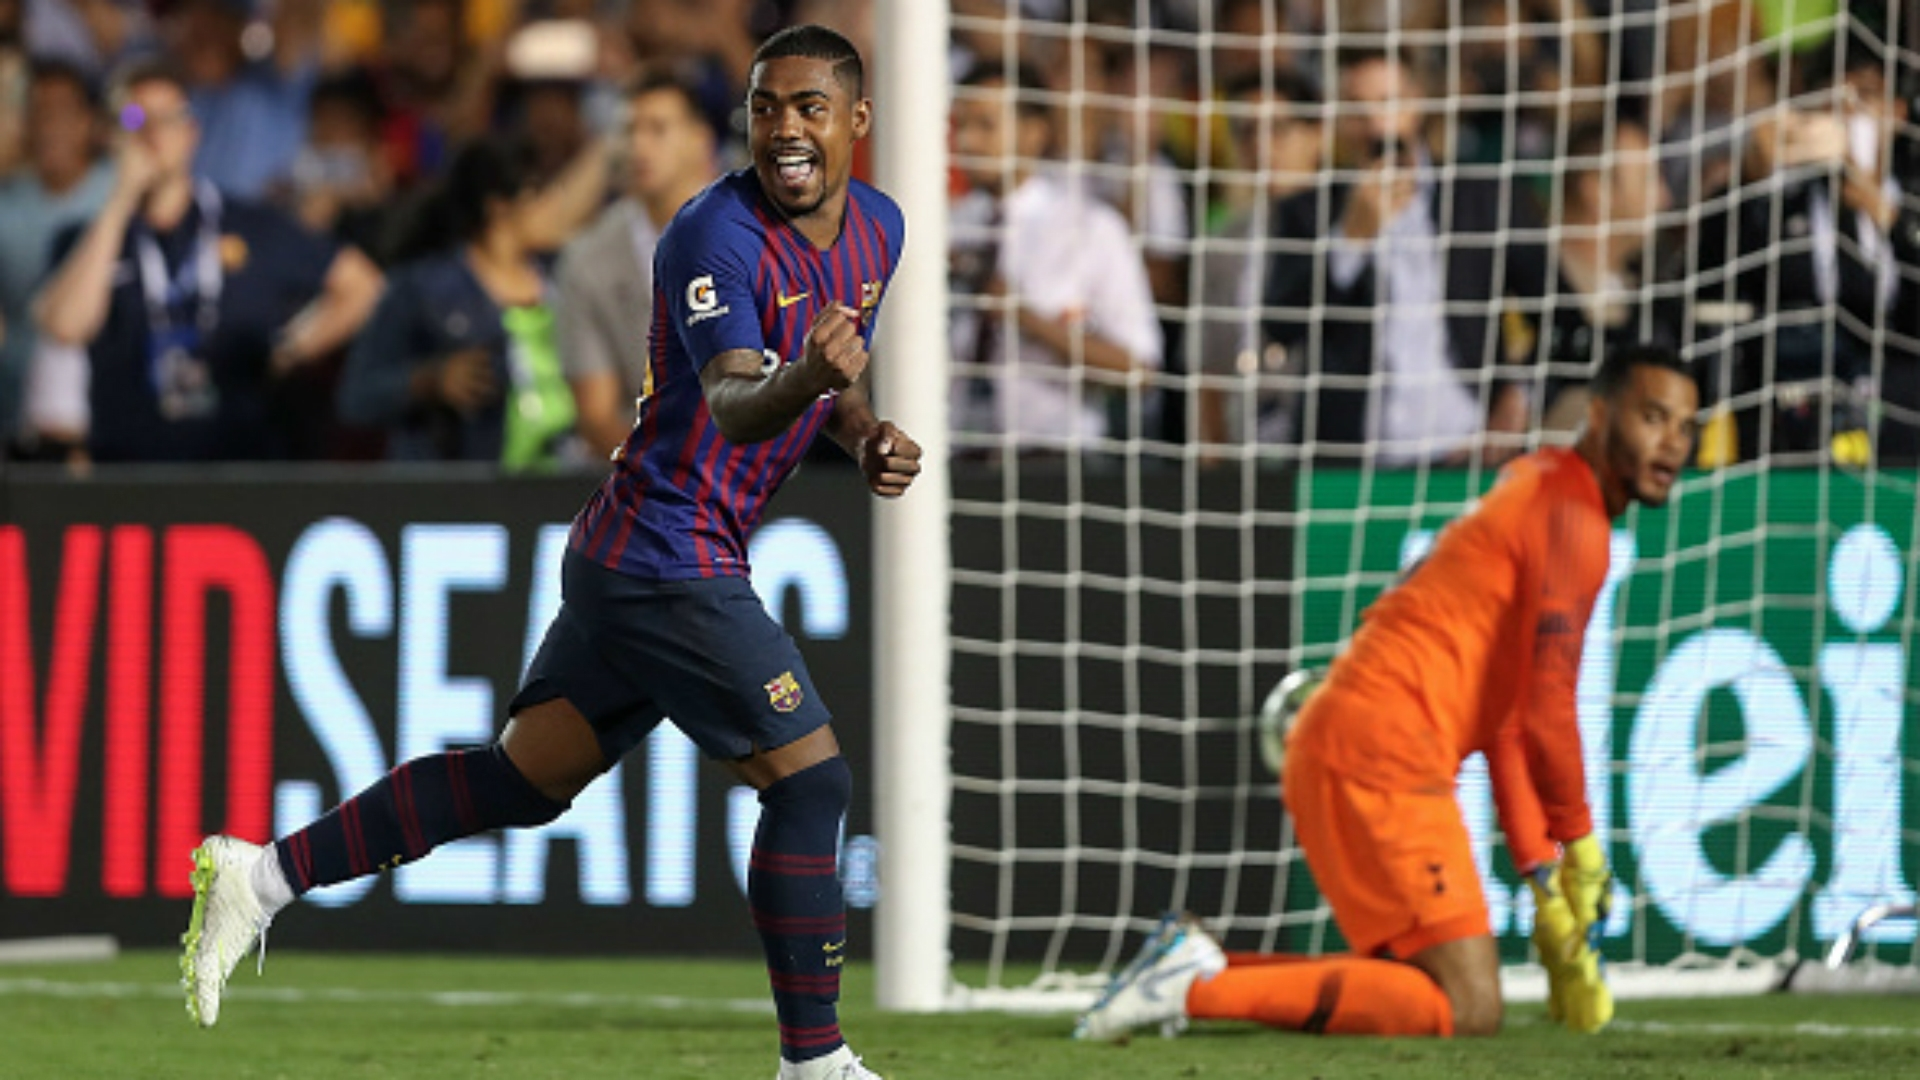 Malcom - Barcelona International champions cup 2018